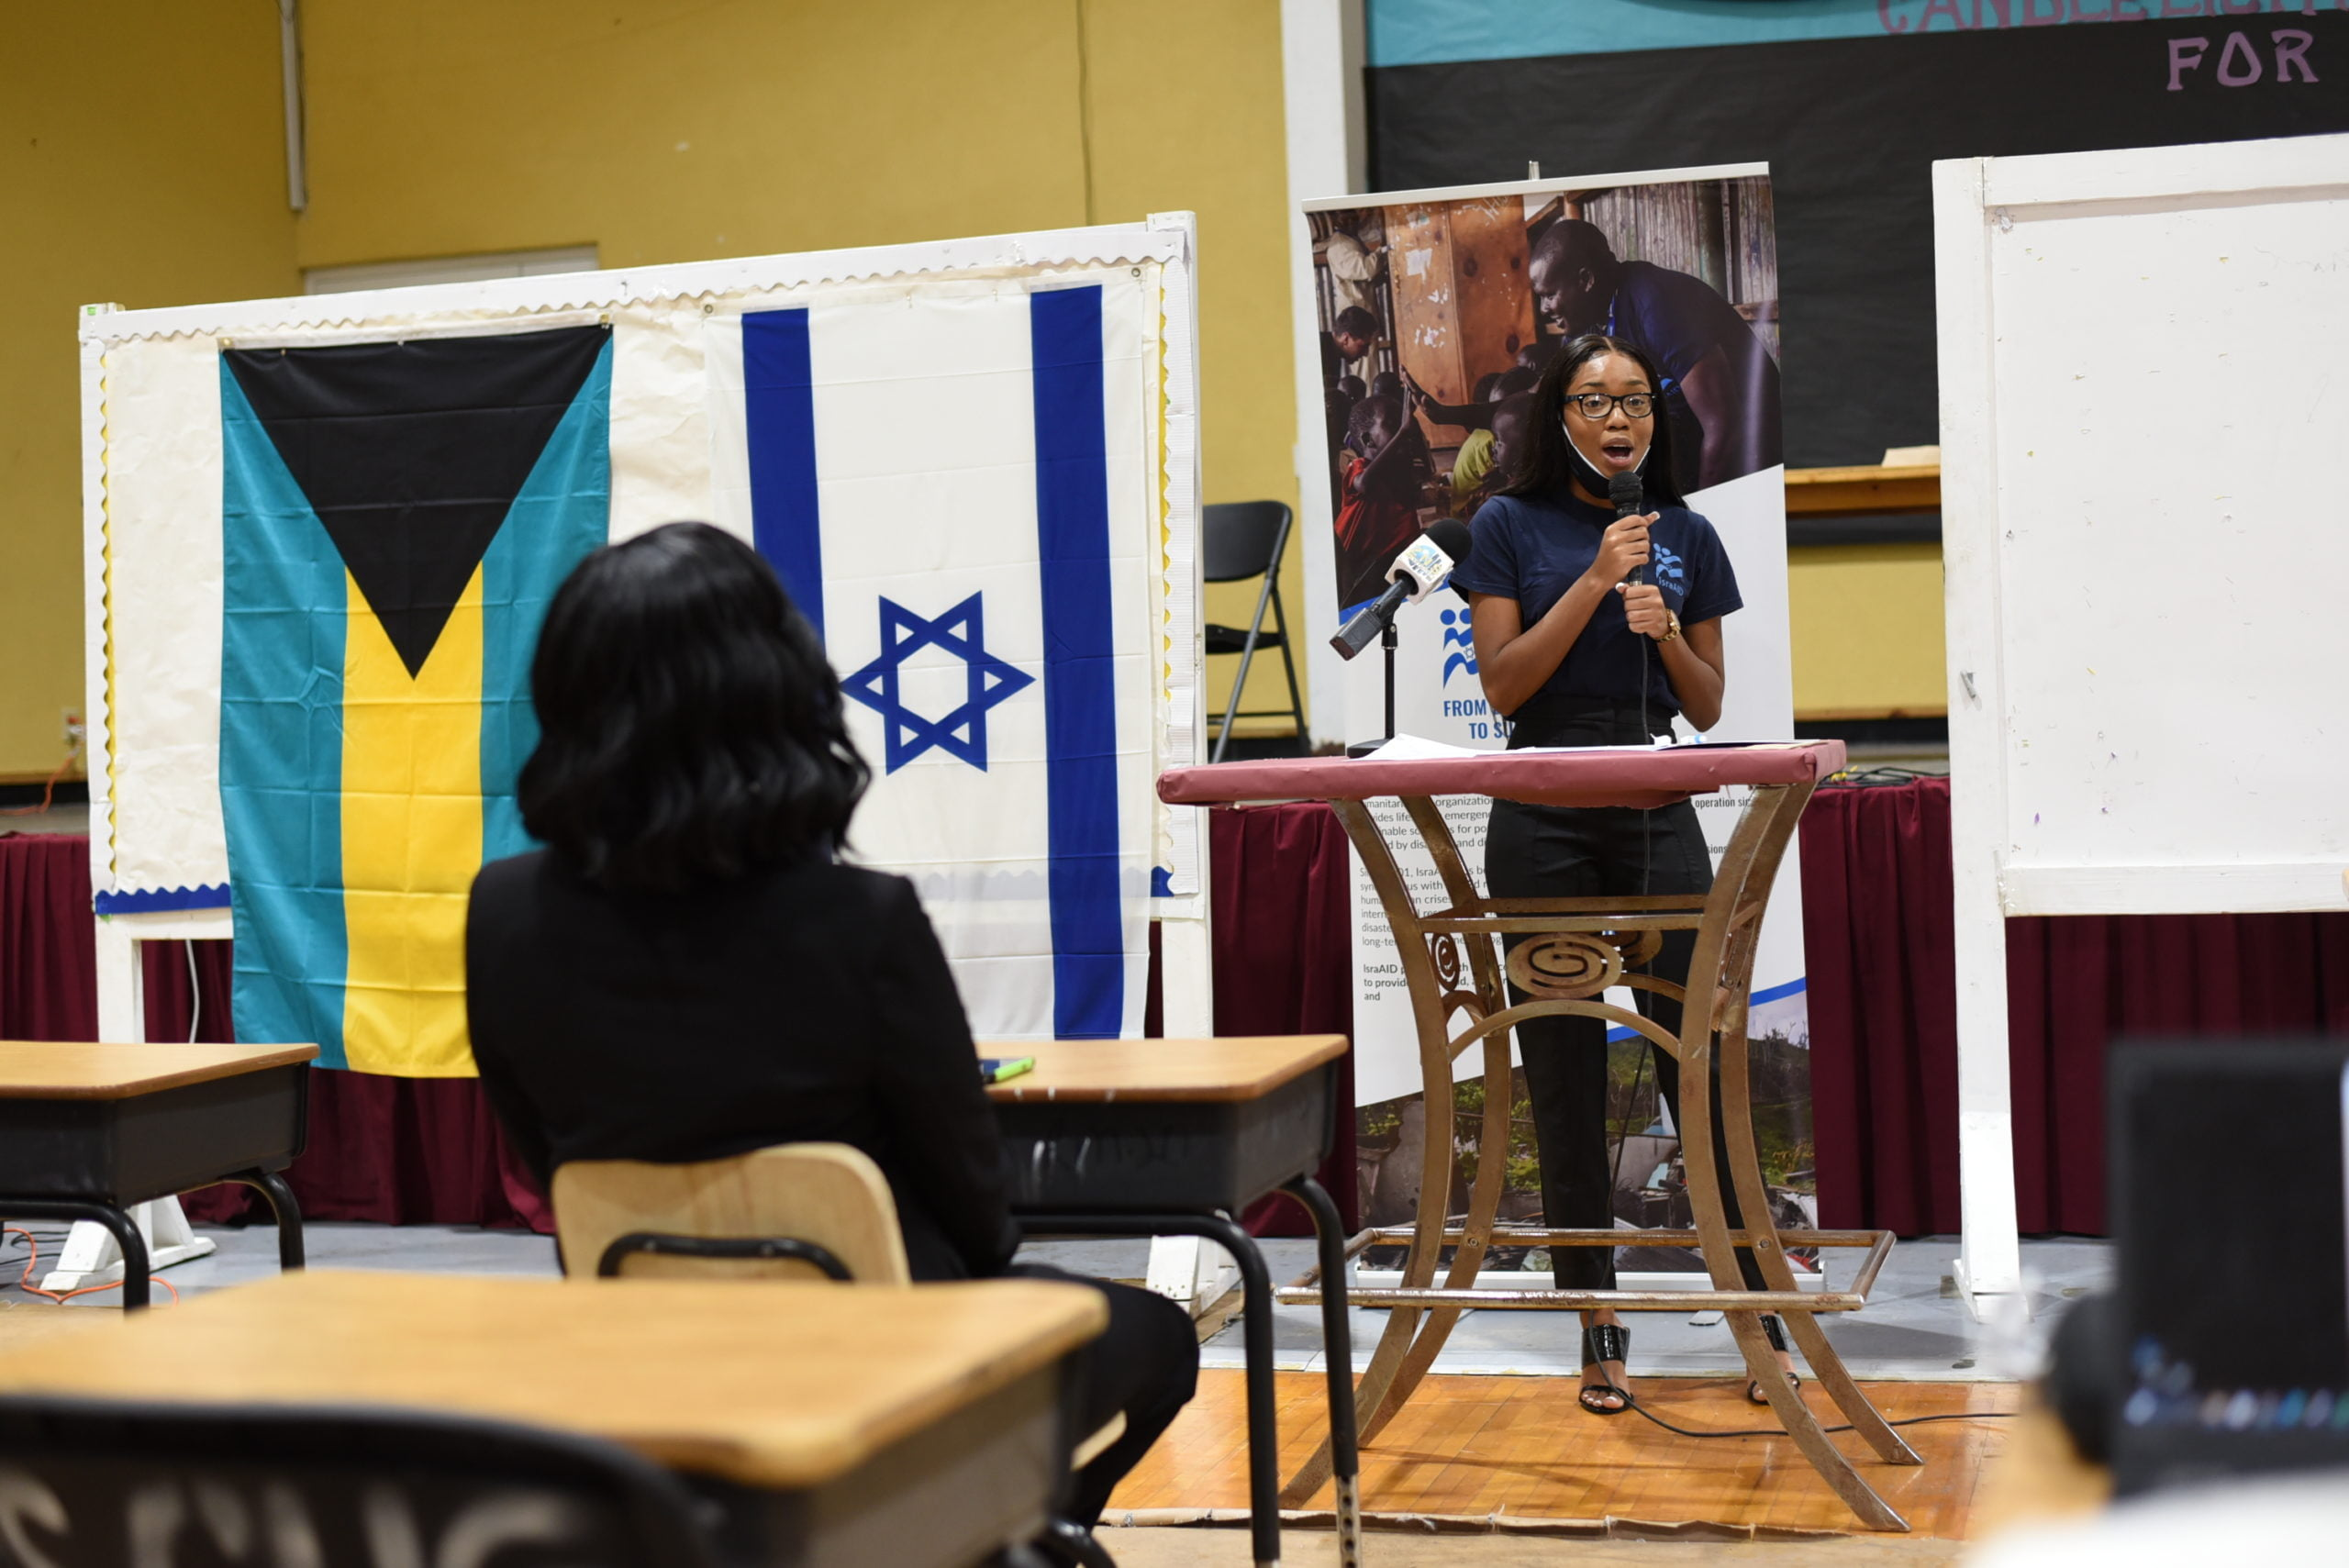 Israel supports The Bahamas' back-to-school efforts amid COVID challenges